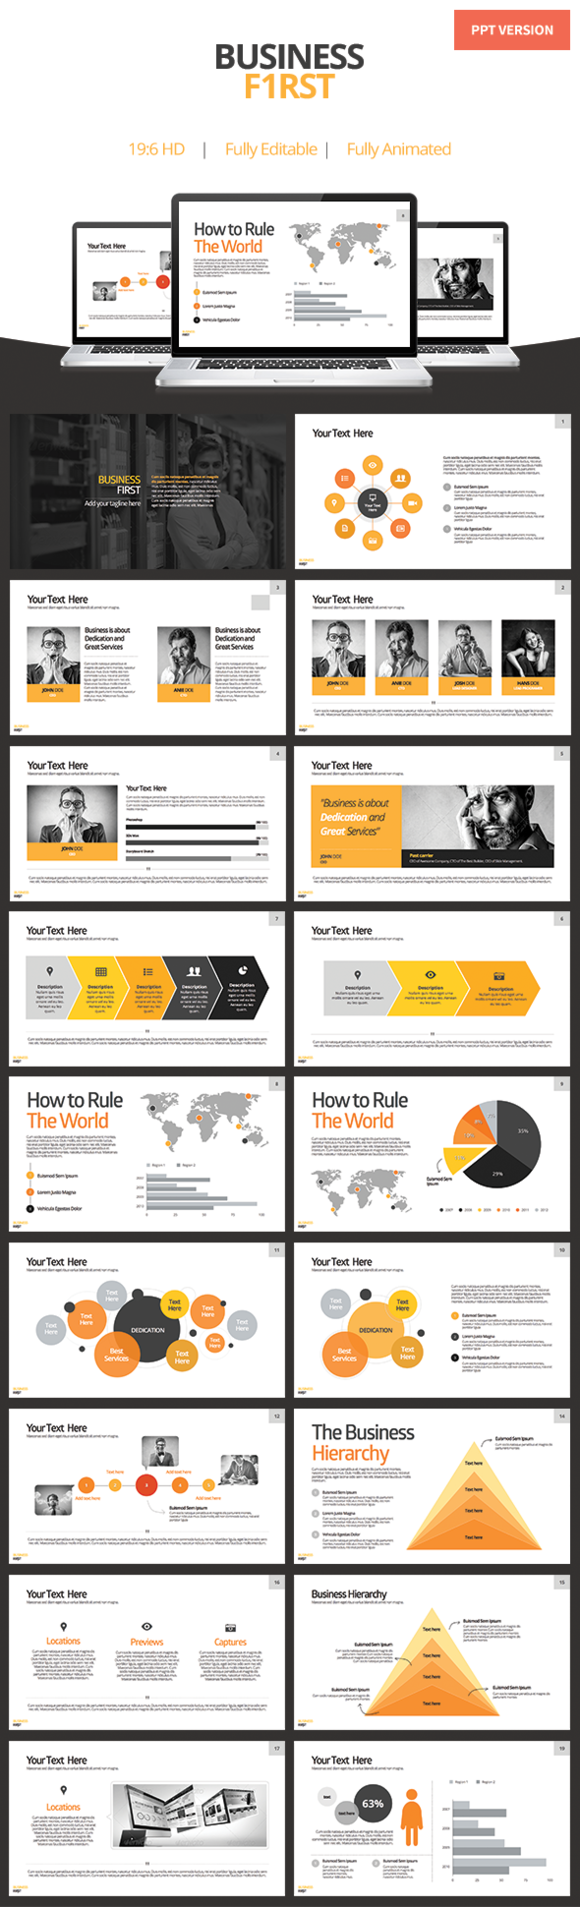 Business First Powerpoint Template